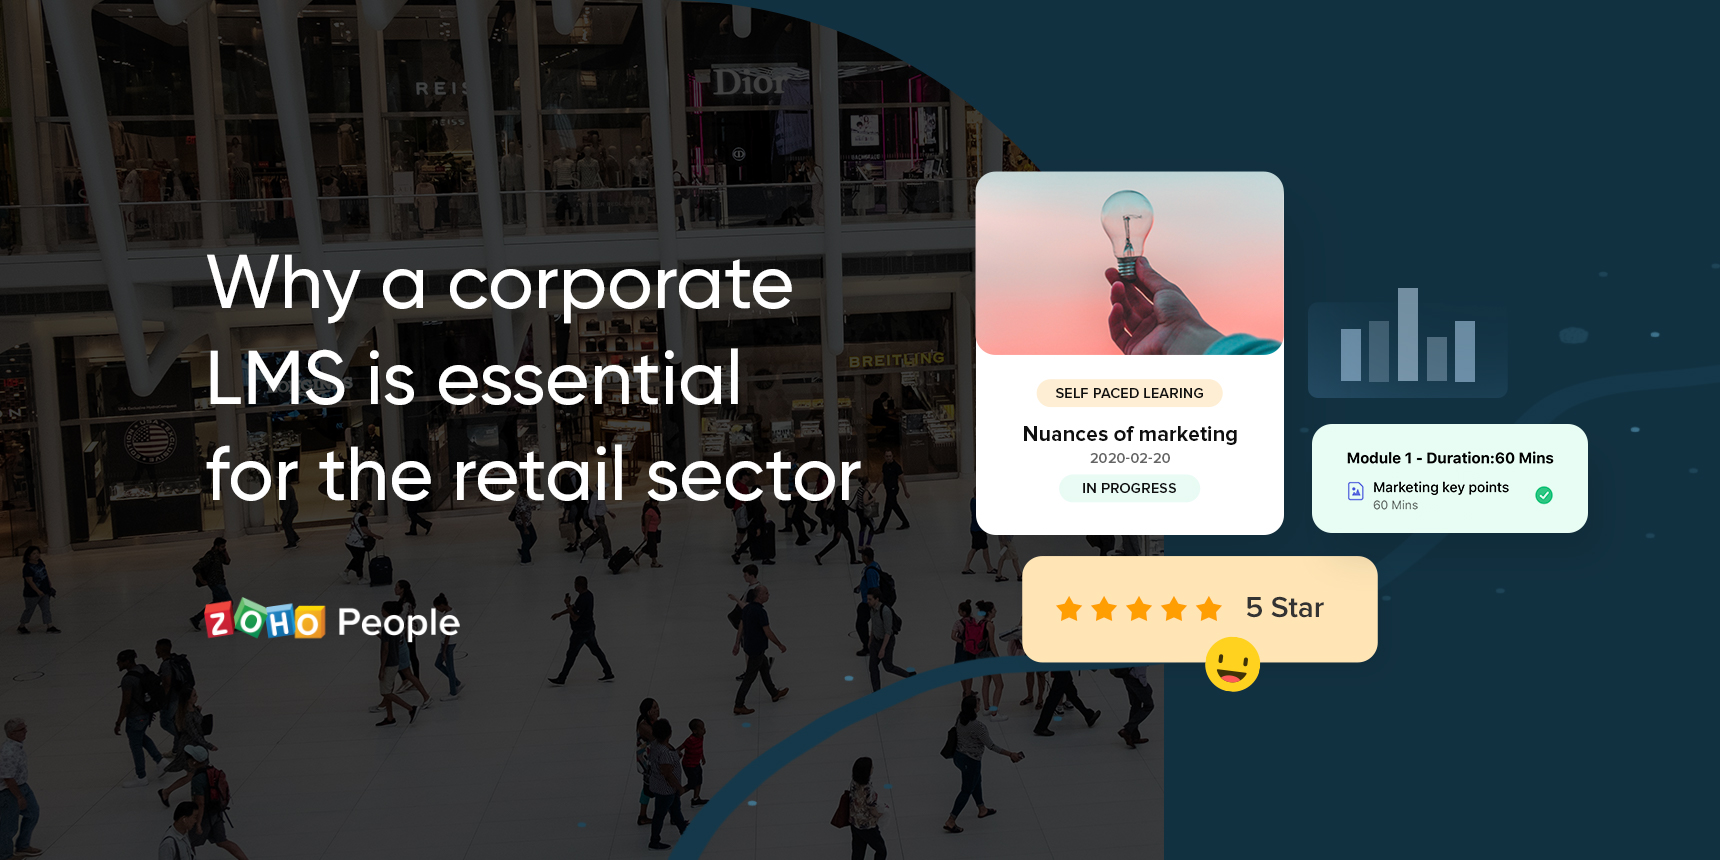 Corporate LMS for retail sector